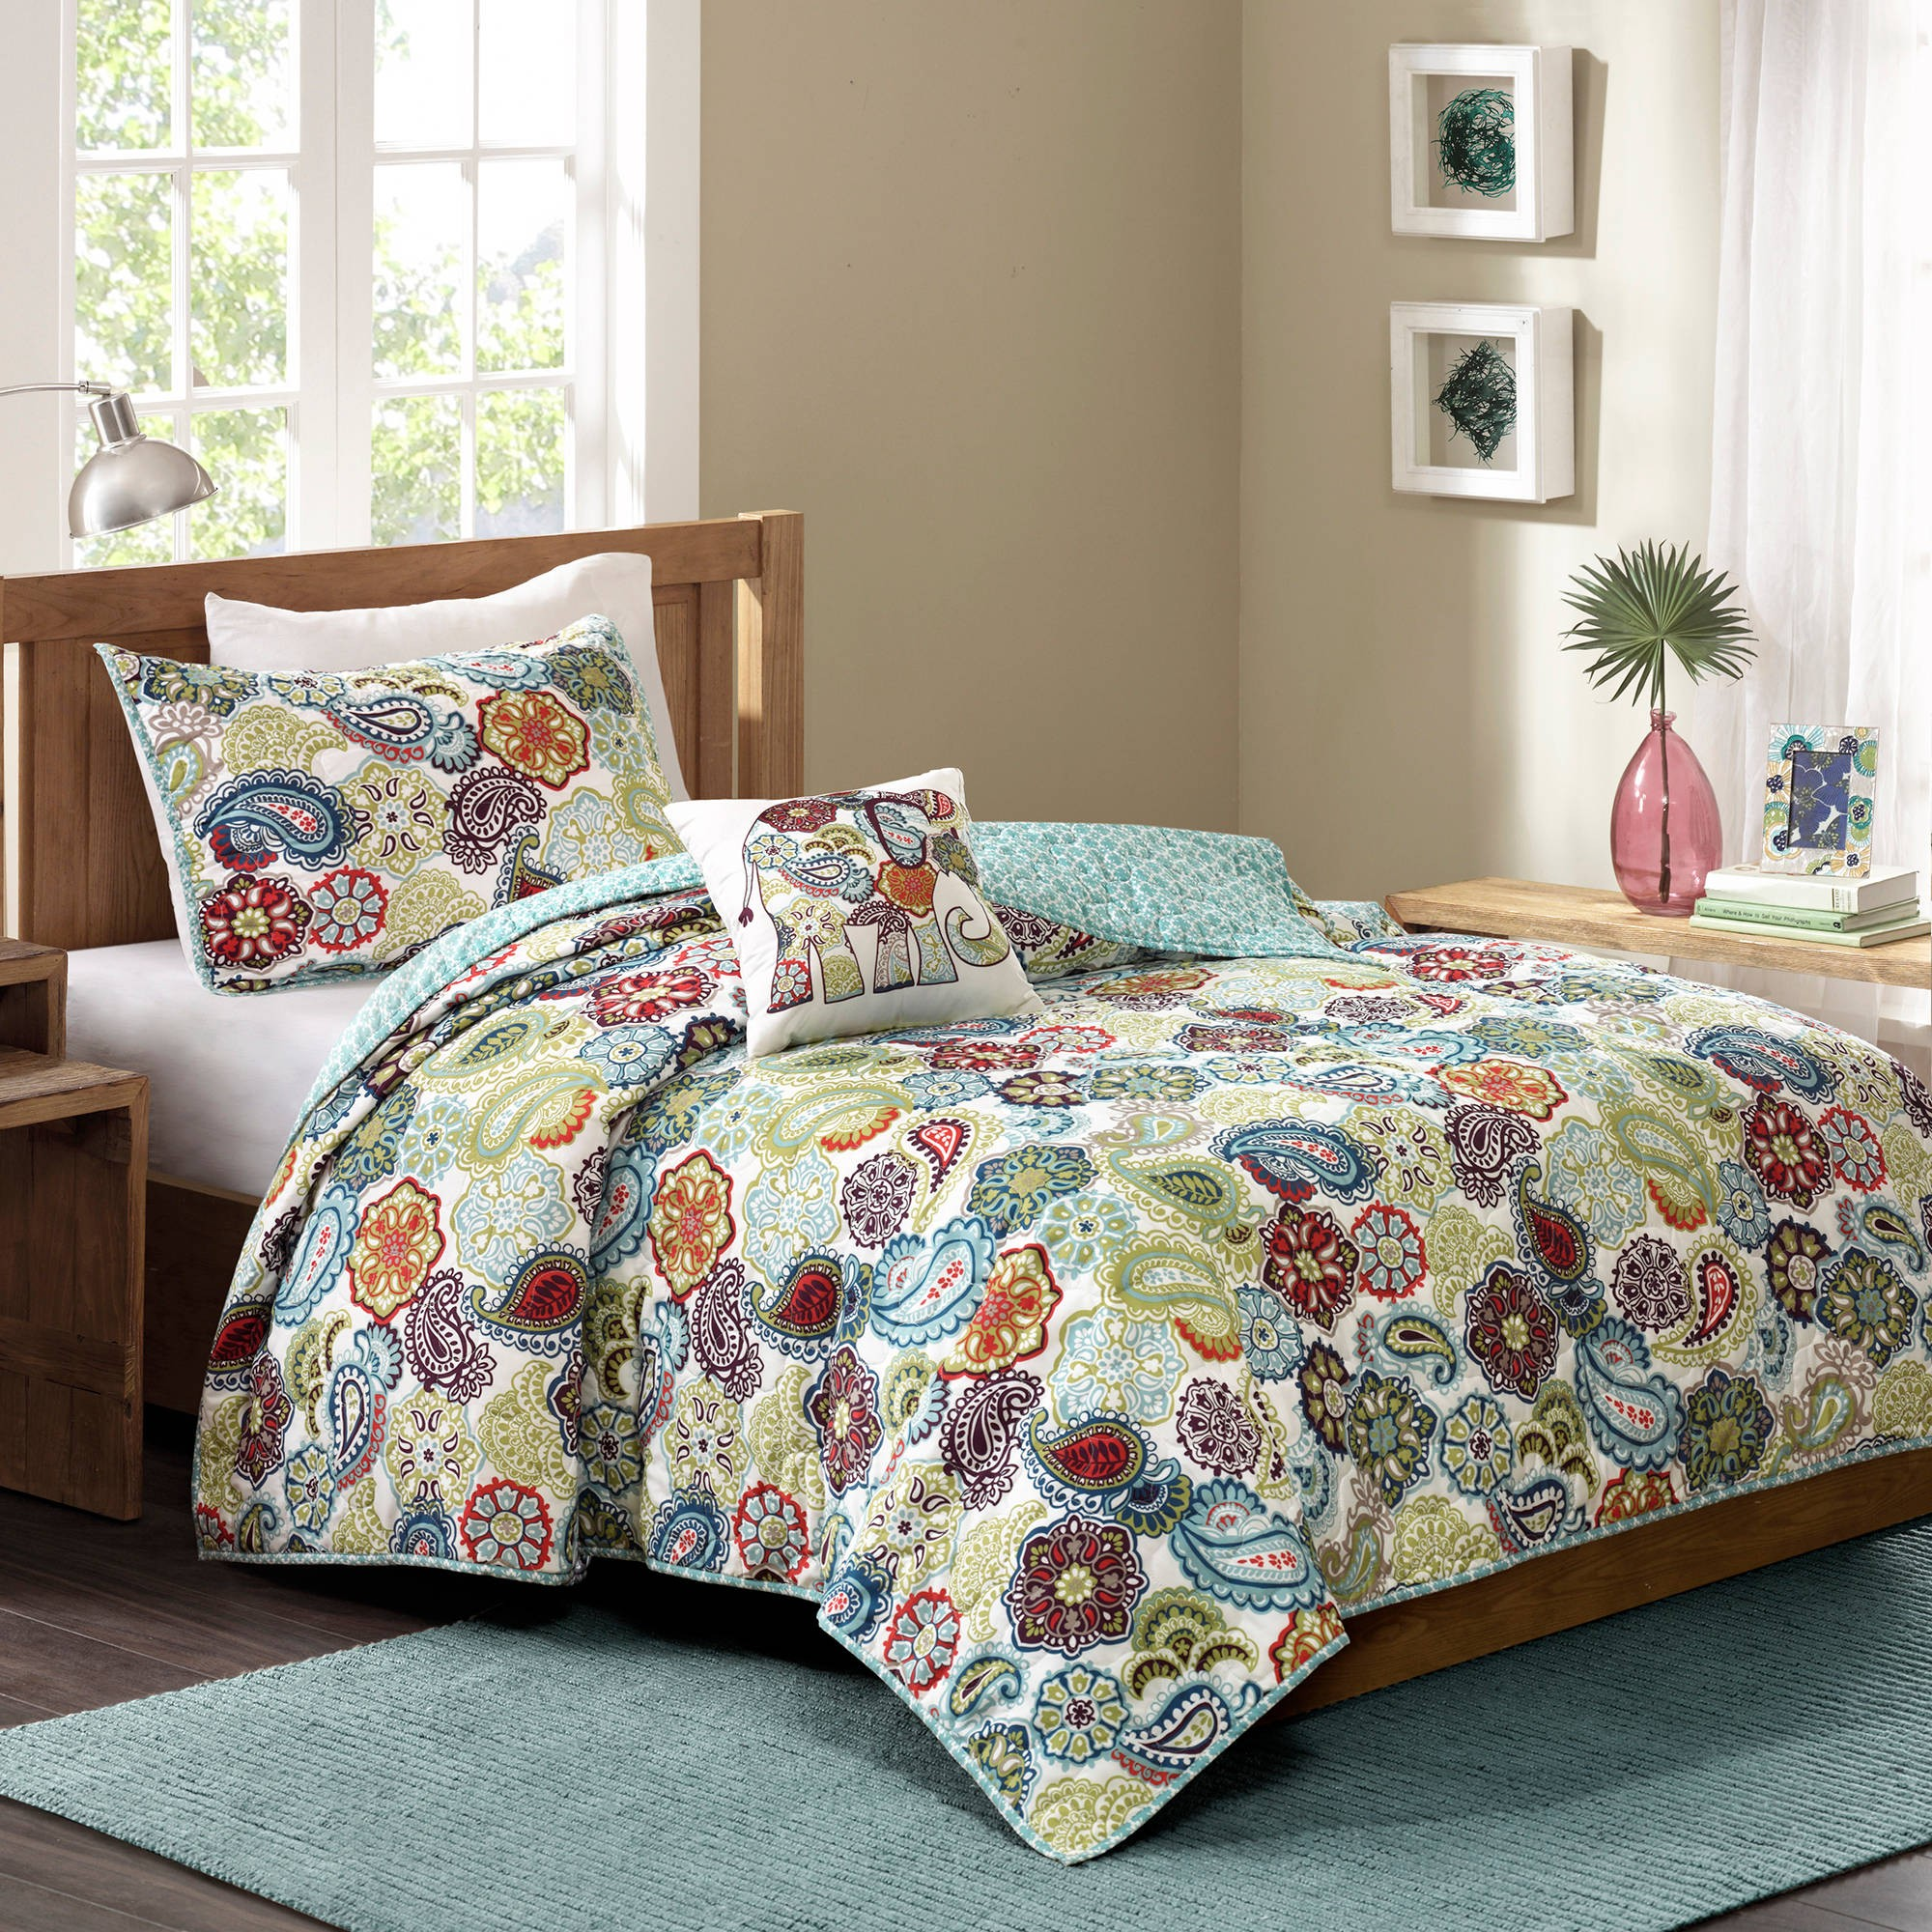 Better Homes And Gardens Bedspreads